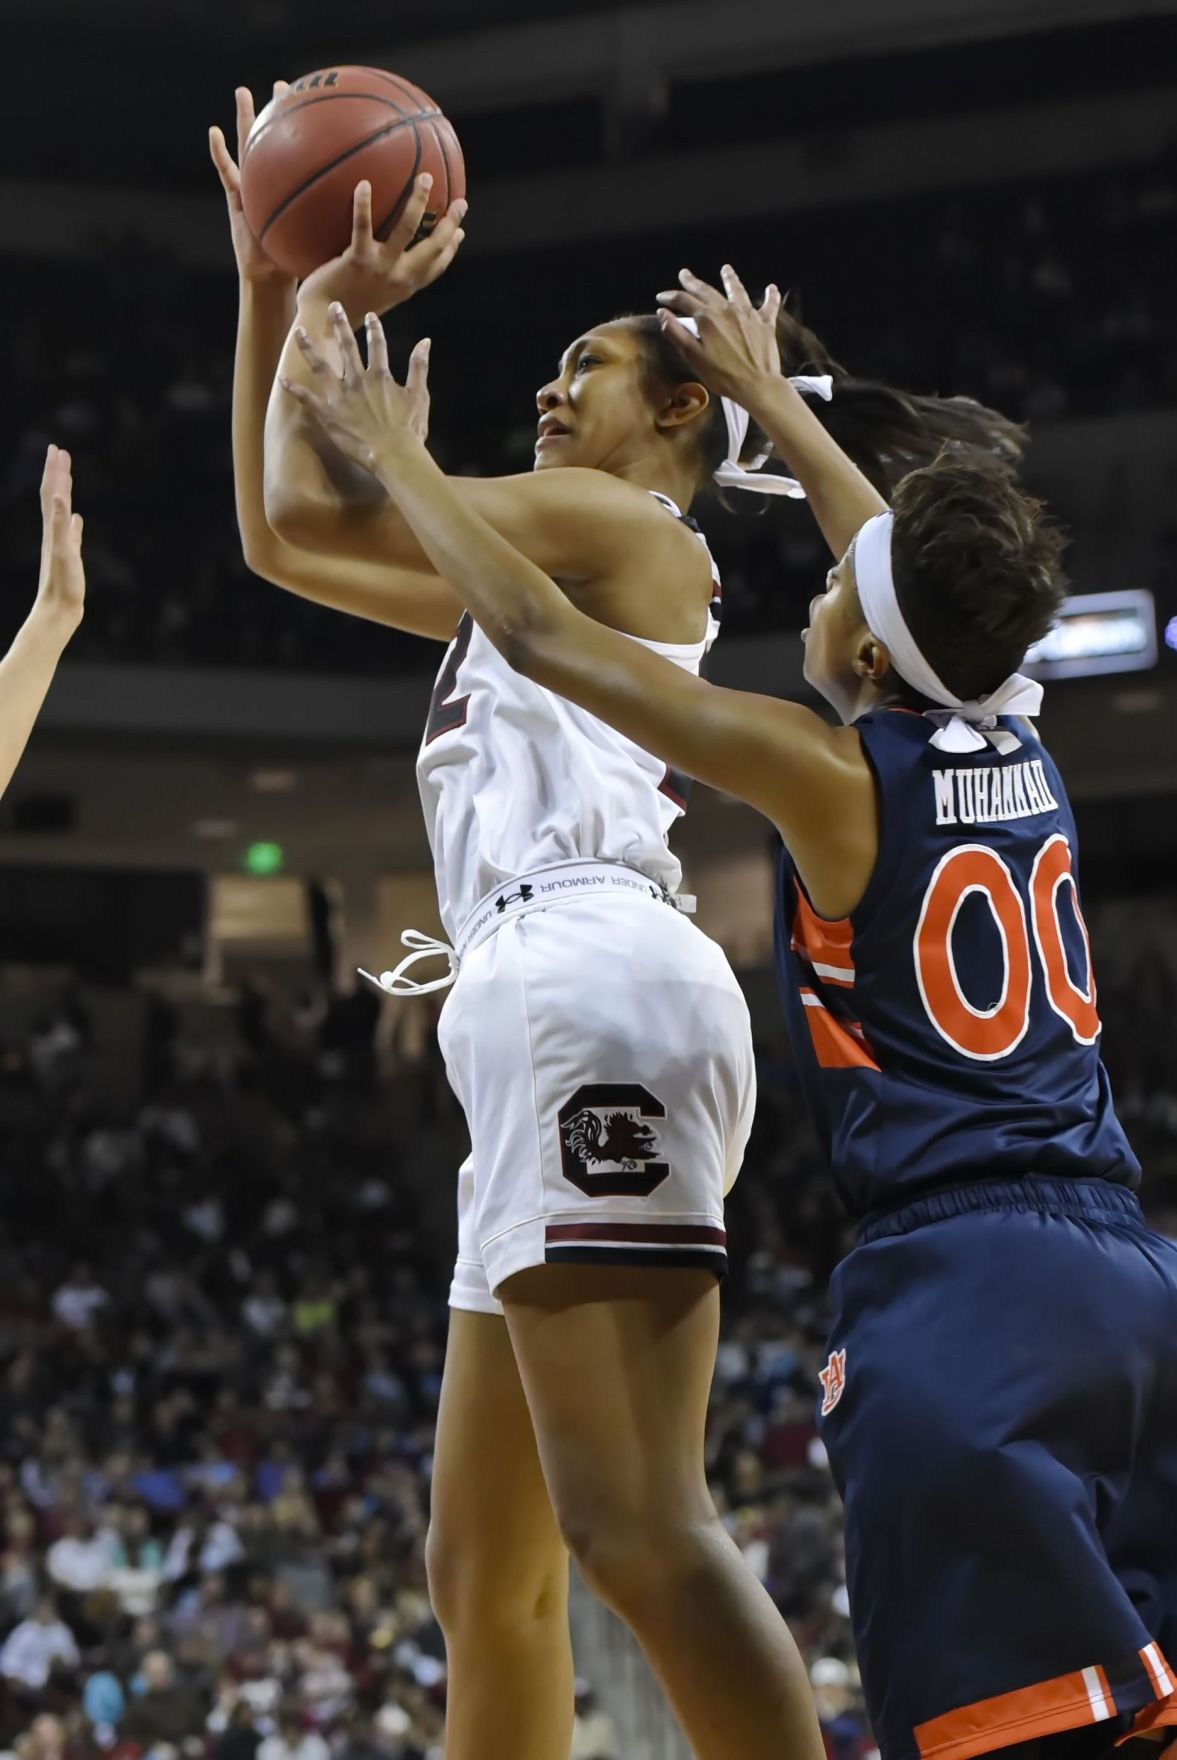 More recognition for A'ja Wilson, top-ranked USC women's team